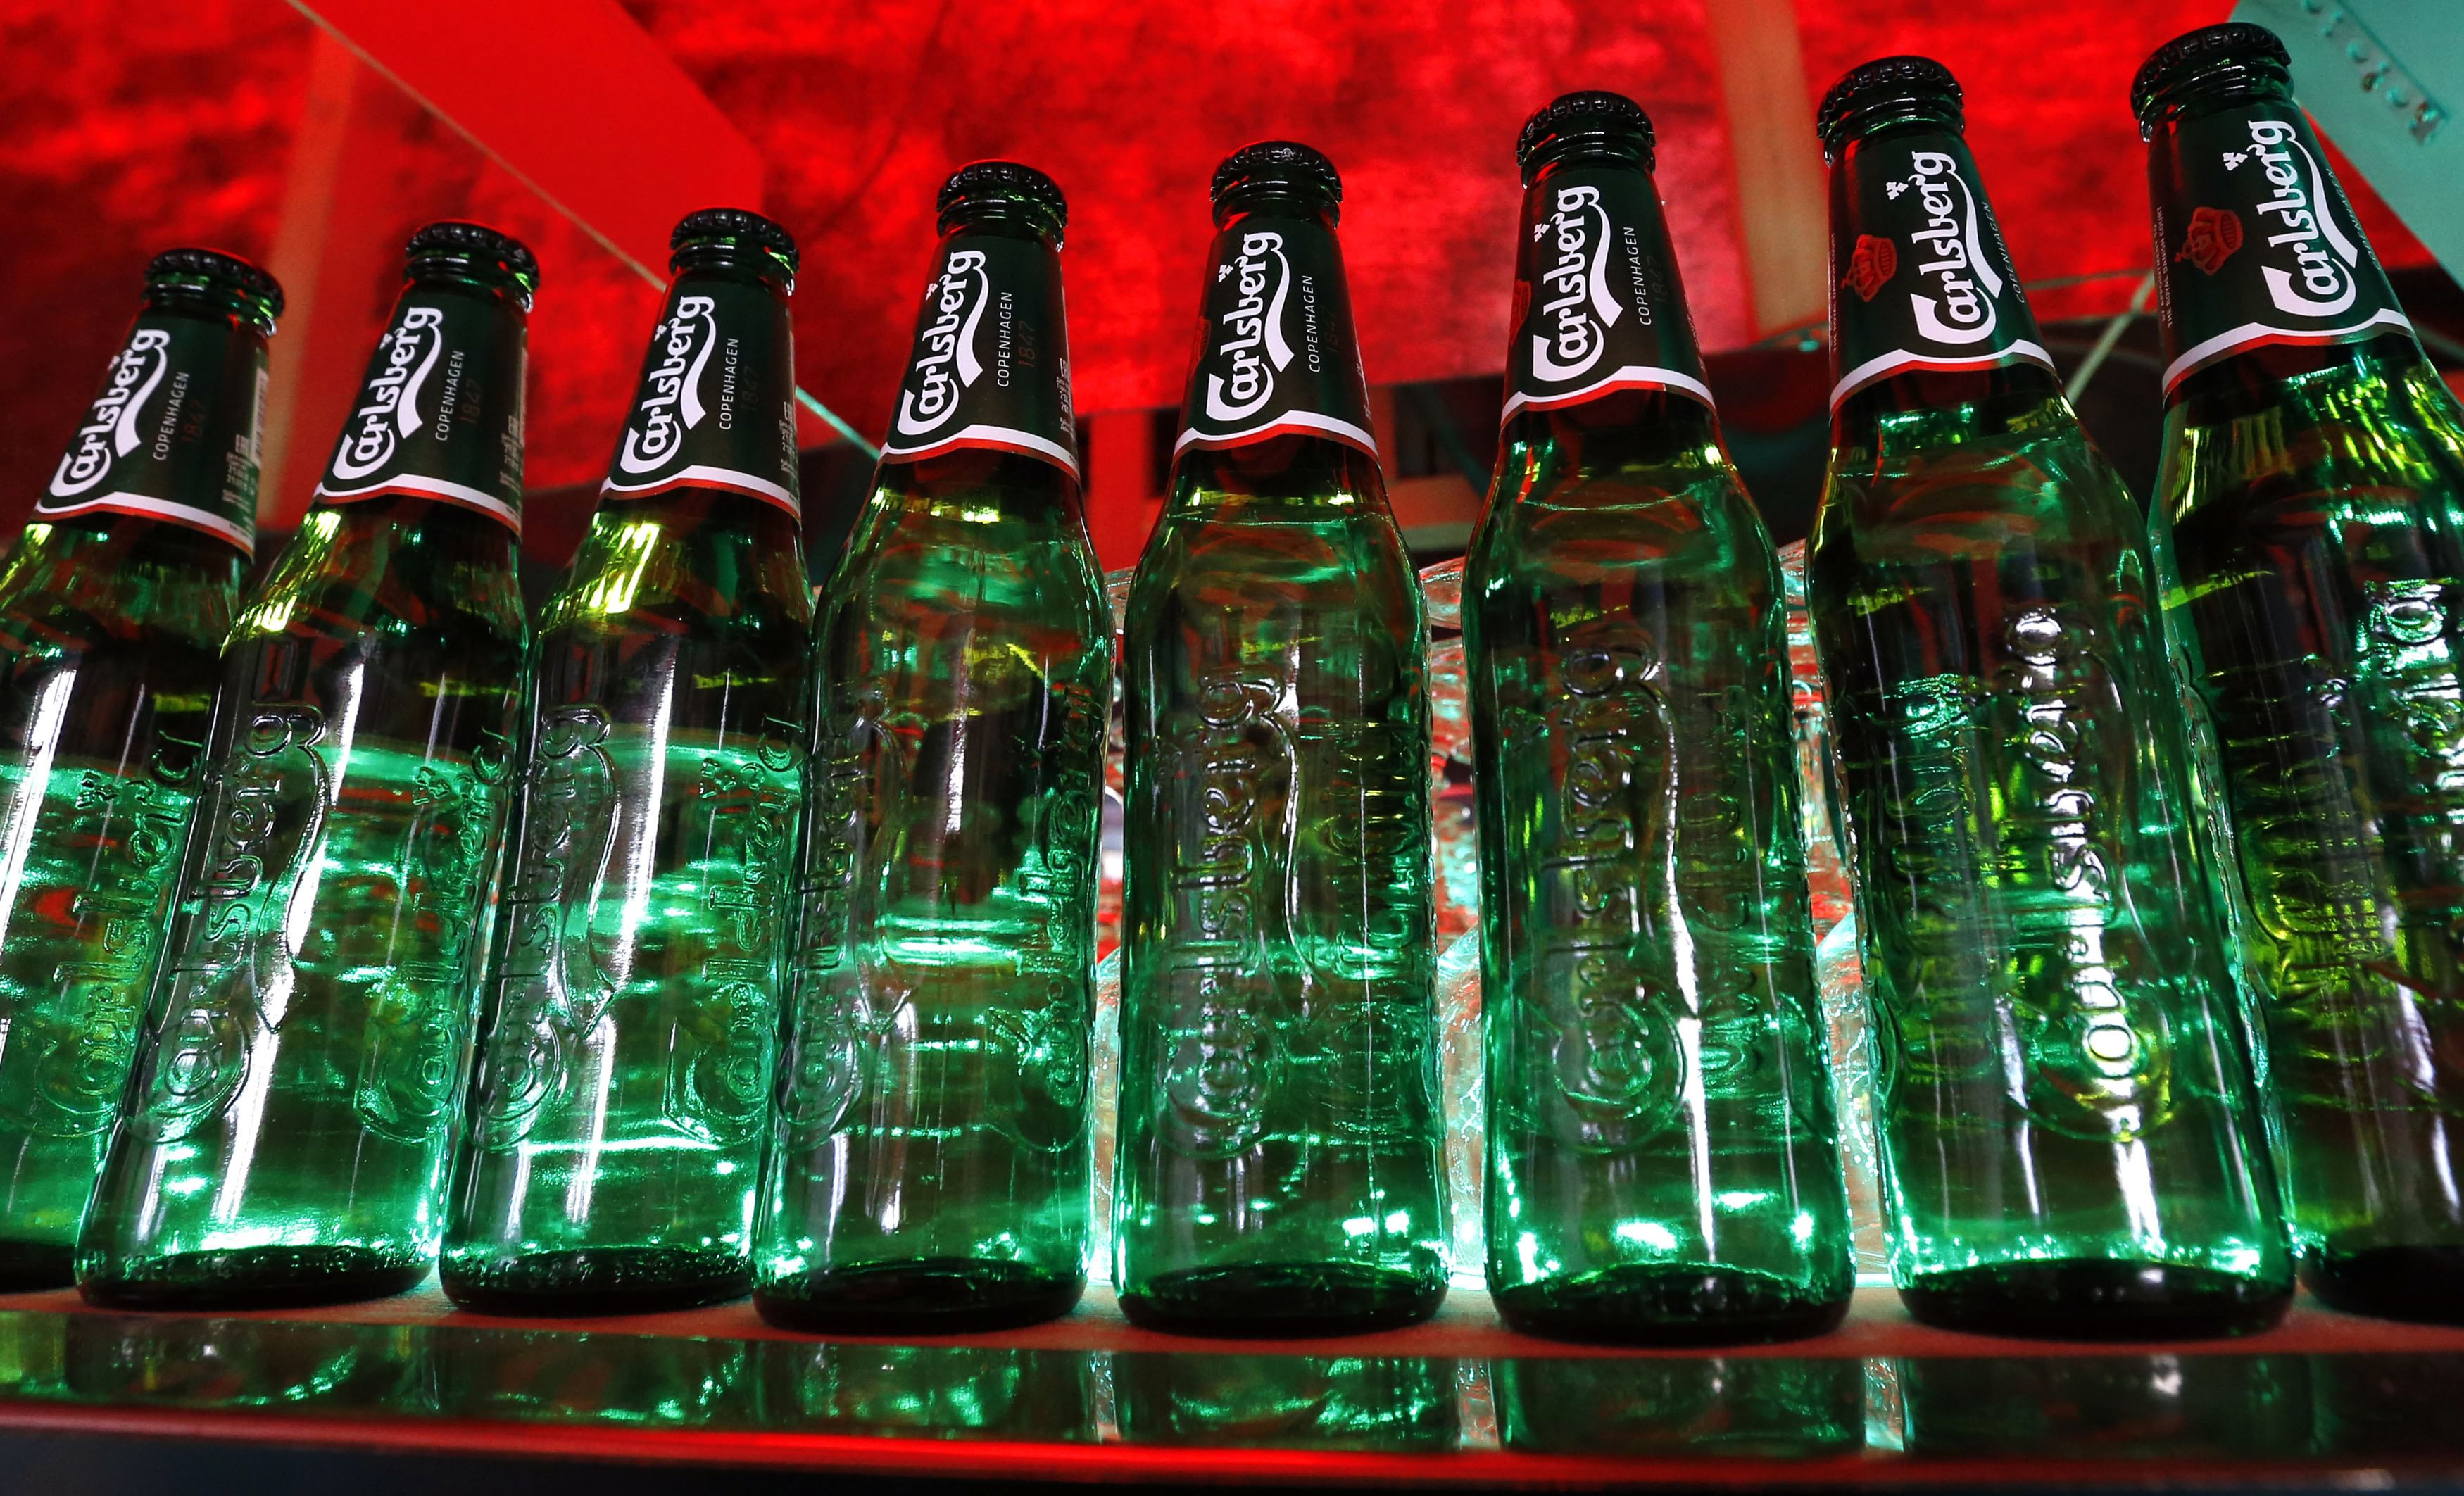 Bottles of Carlsberg beer are seen in a bar in St. Petersburg June 17, 2014. Denmark's Carlsberg will keep its breweries in Russia running regardless of empty capacity, despite other brewers closing plants as Western sanctions over Ukraine hamper an already faltering economy.